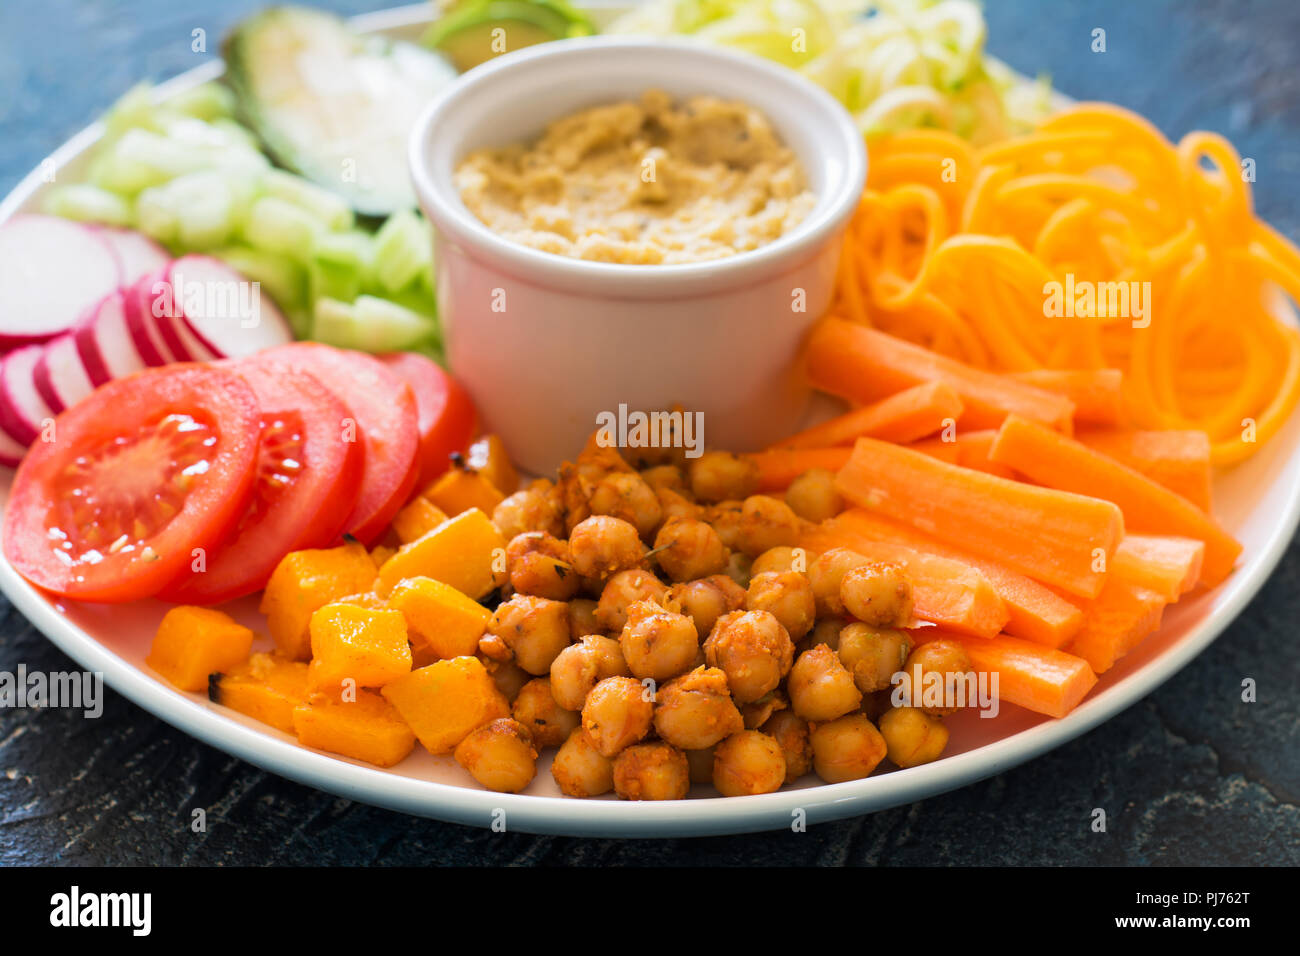 Close Up Of Healthy Vegan Dinner Plate Chickpeas And Vegetables On The Blue Background